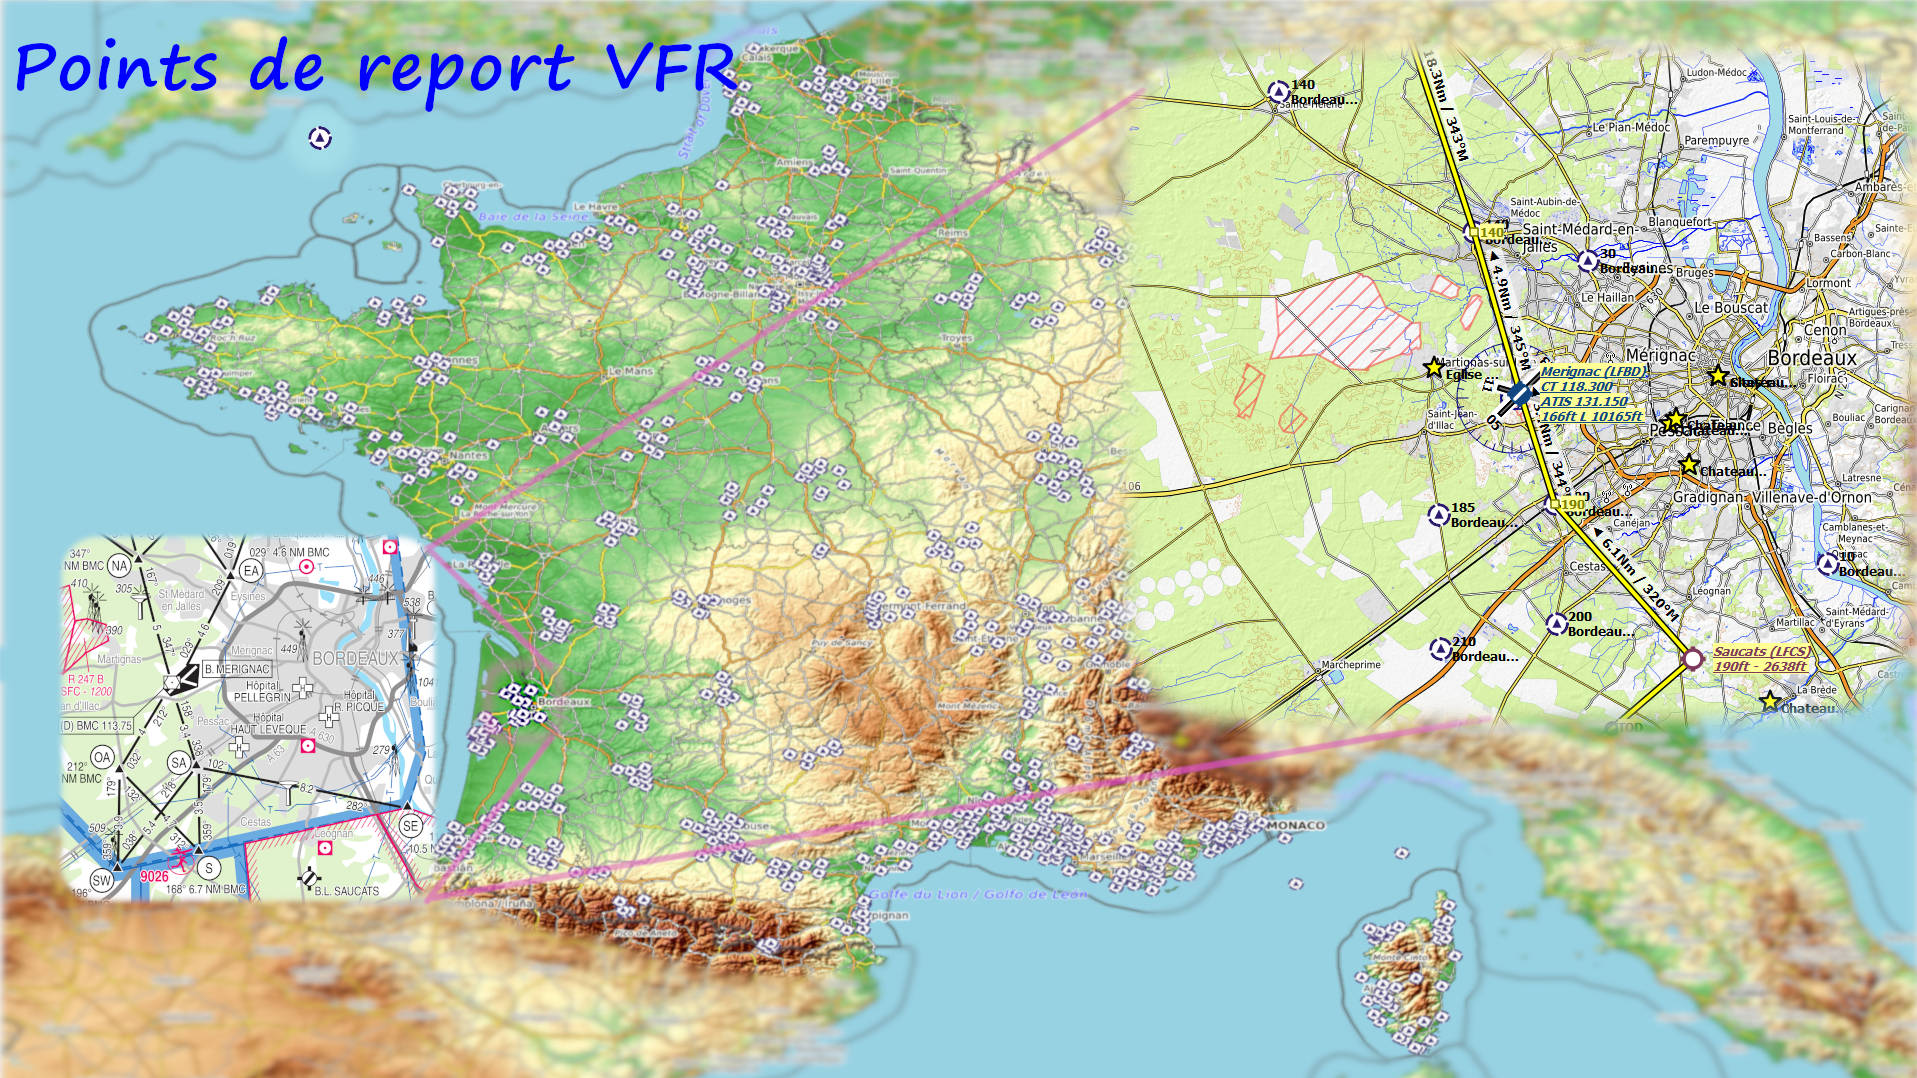 Points de report VFR